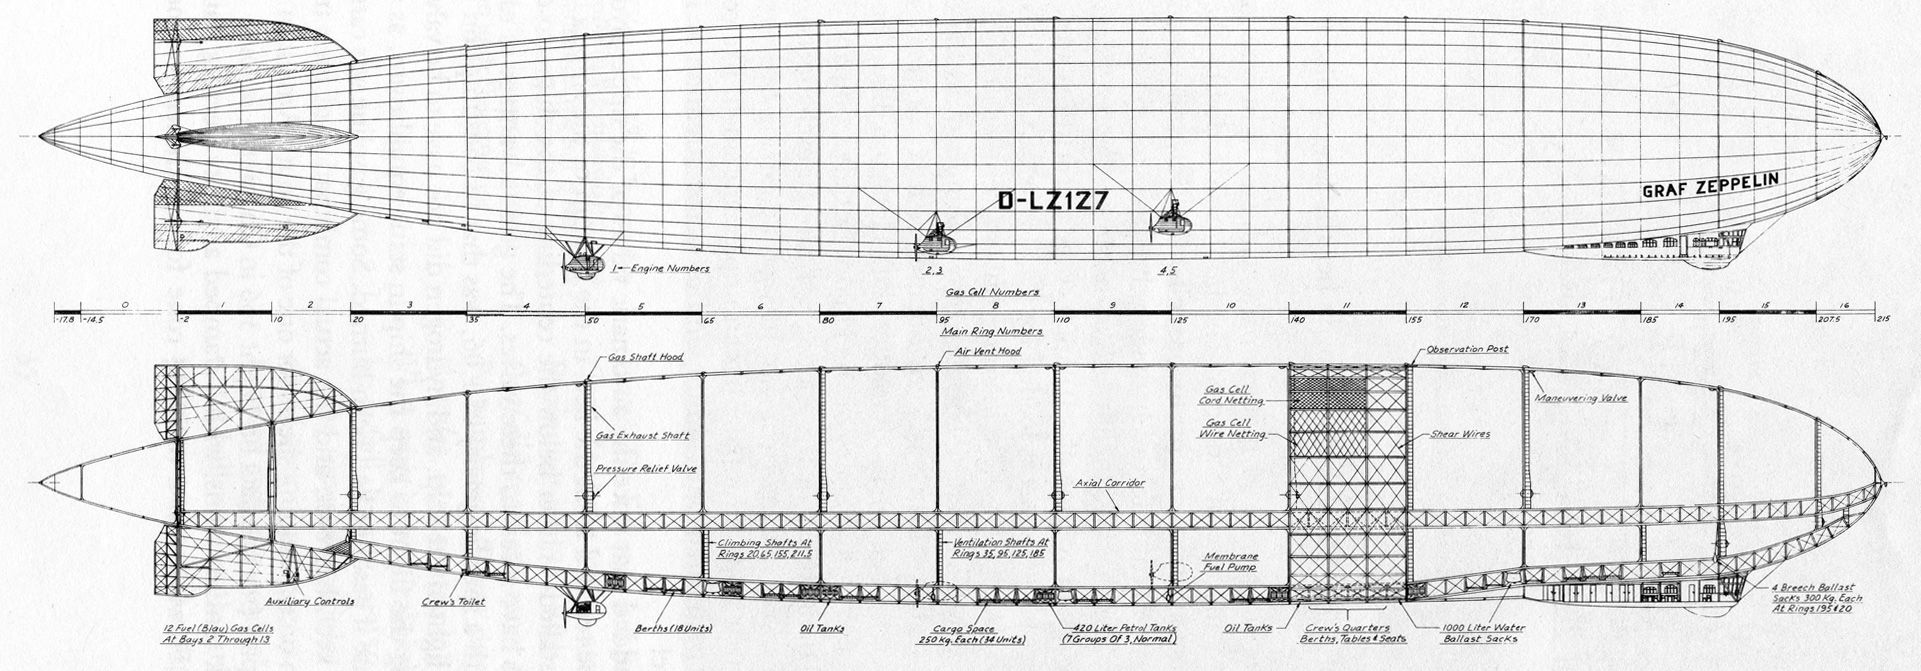 LZ127 Graf Zeppelin profile, showing rings, gas cells, and major elements